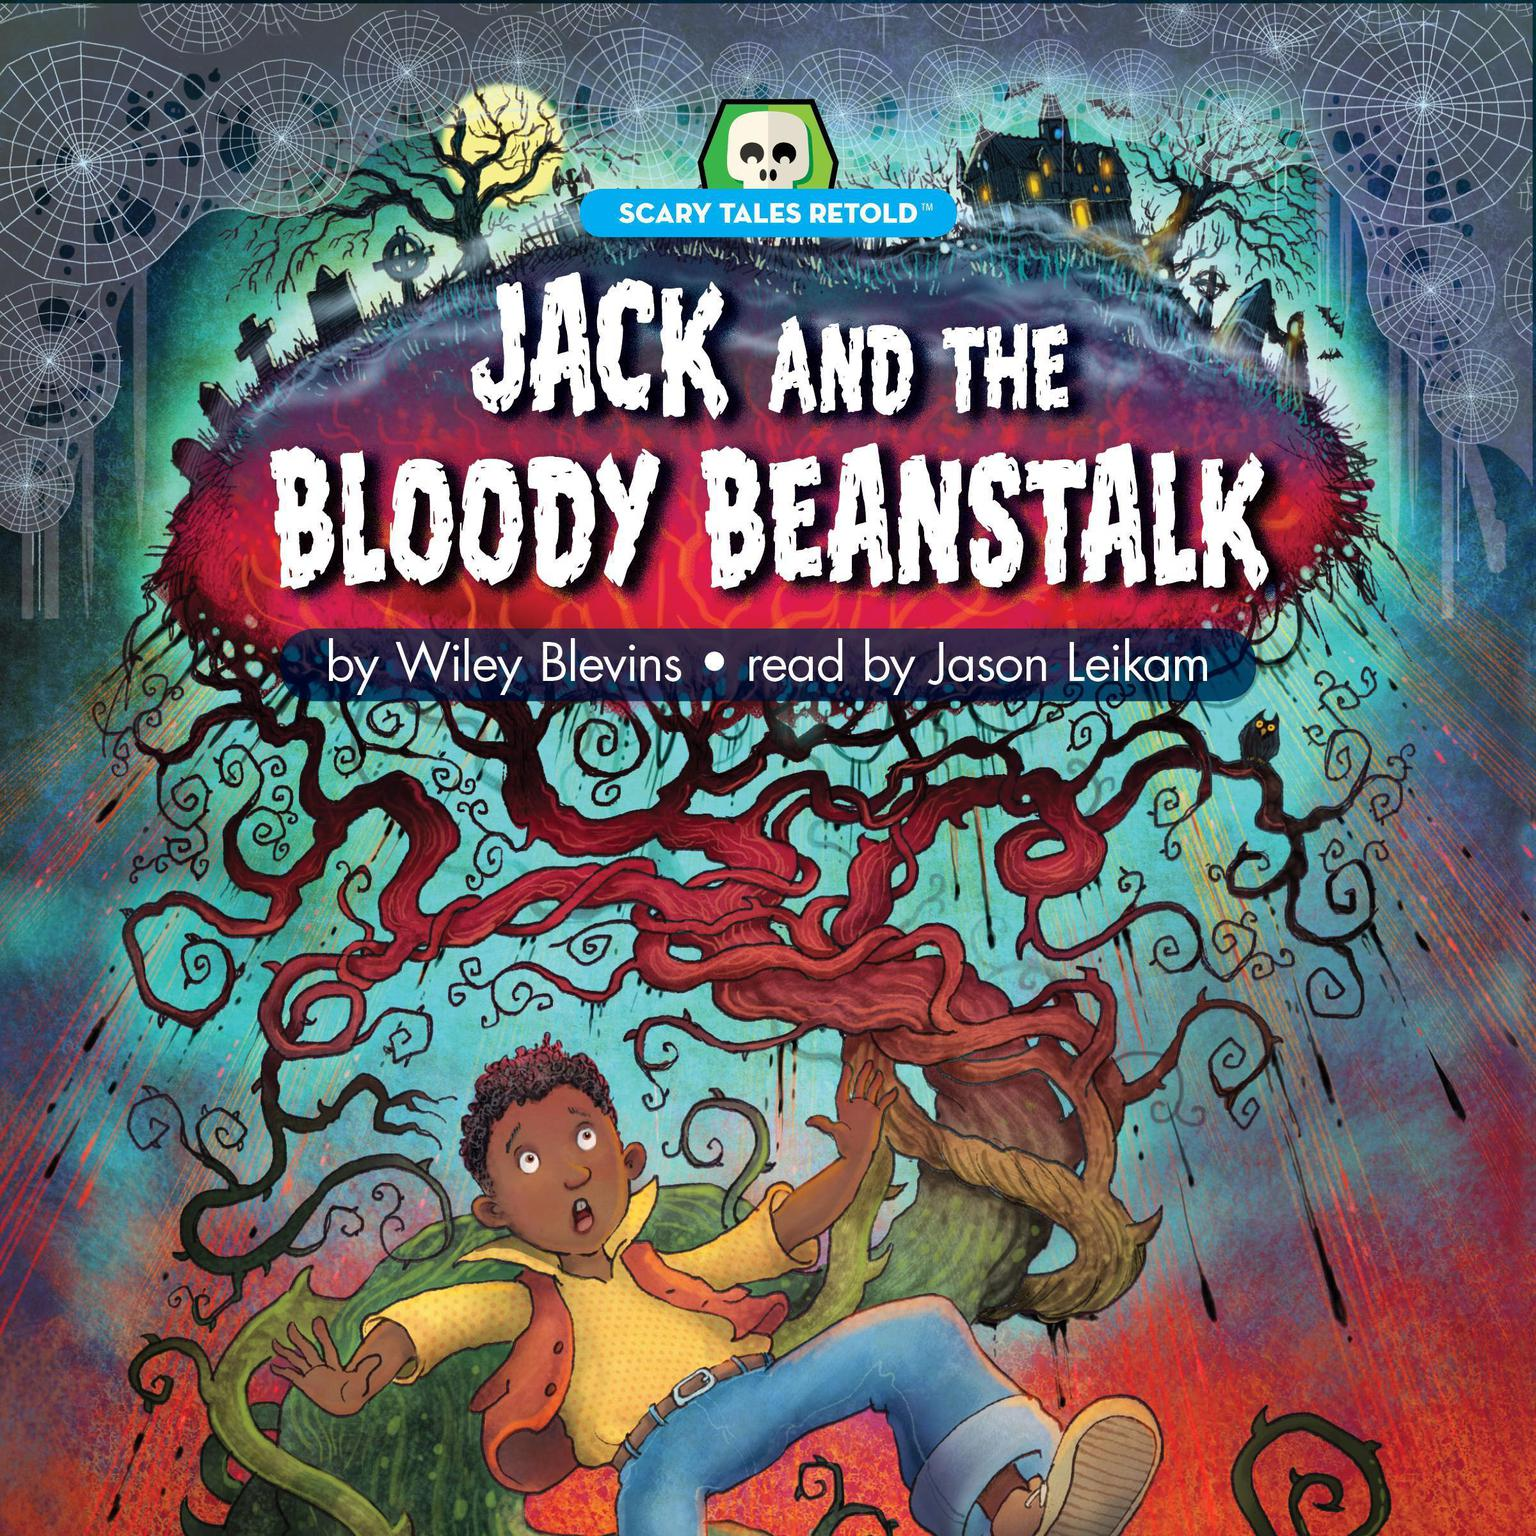 Jack and the Bloody Beanstalk: Scary Tales Retold Audiobook, by Wiley Blevins